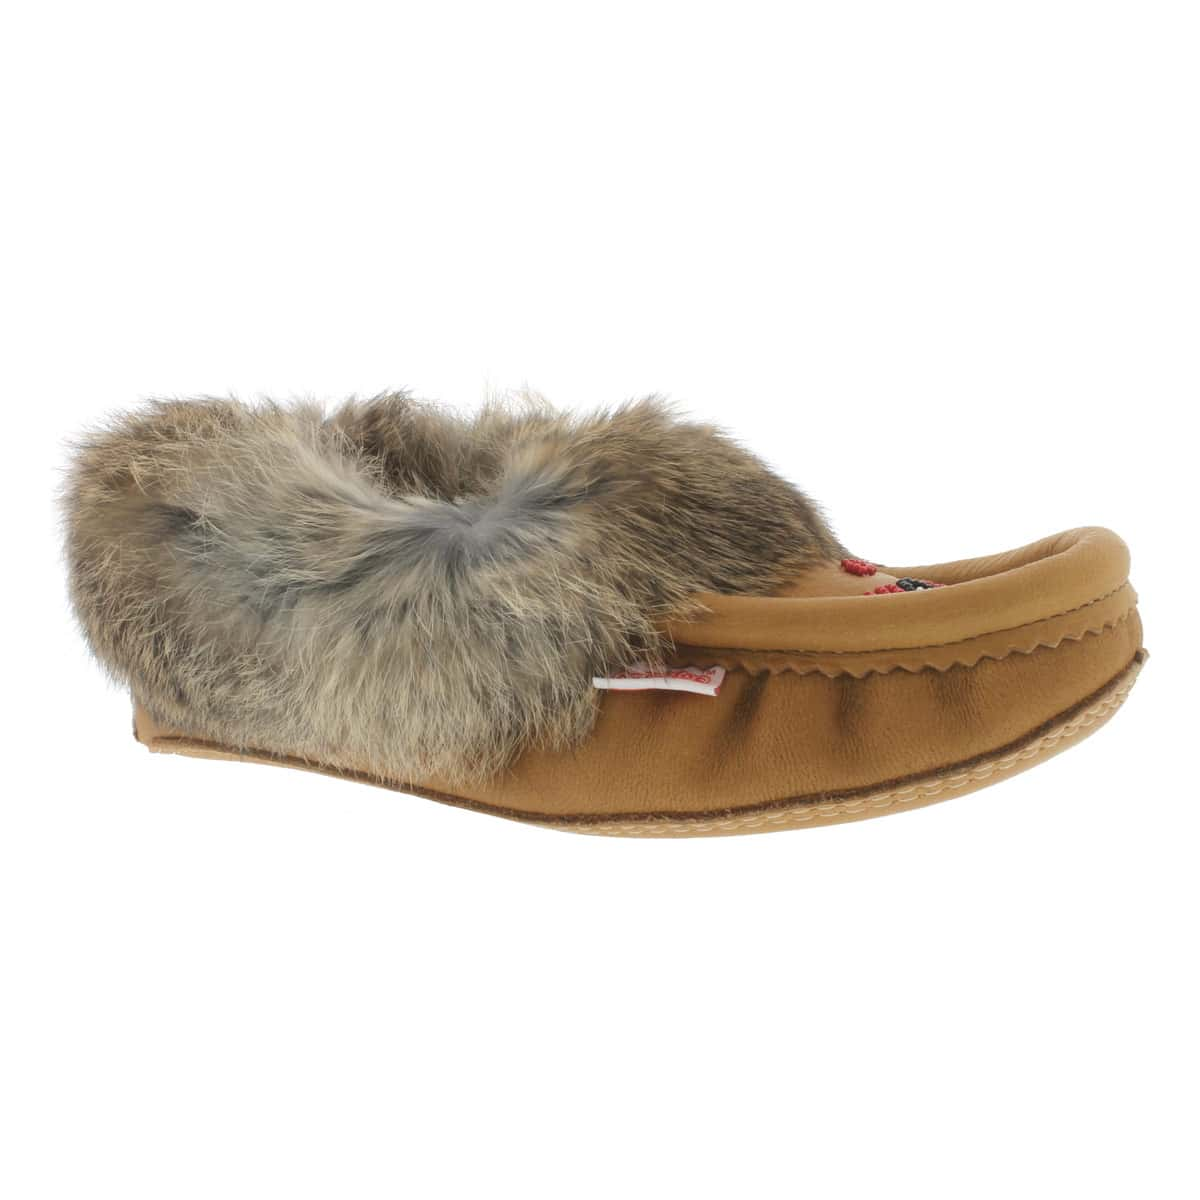 Women's 671 tan rabbit fur moccasins